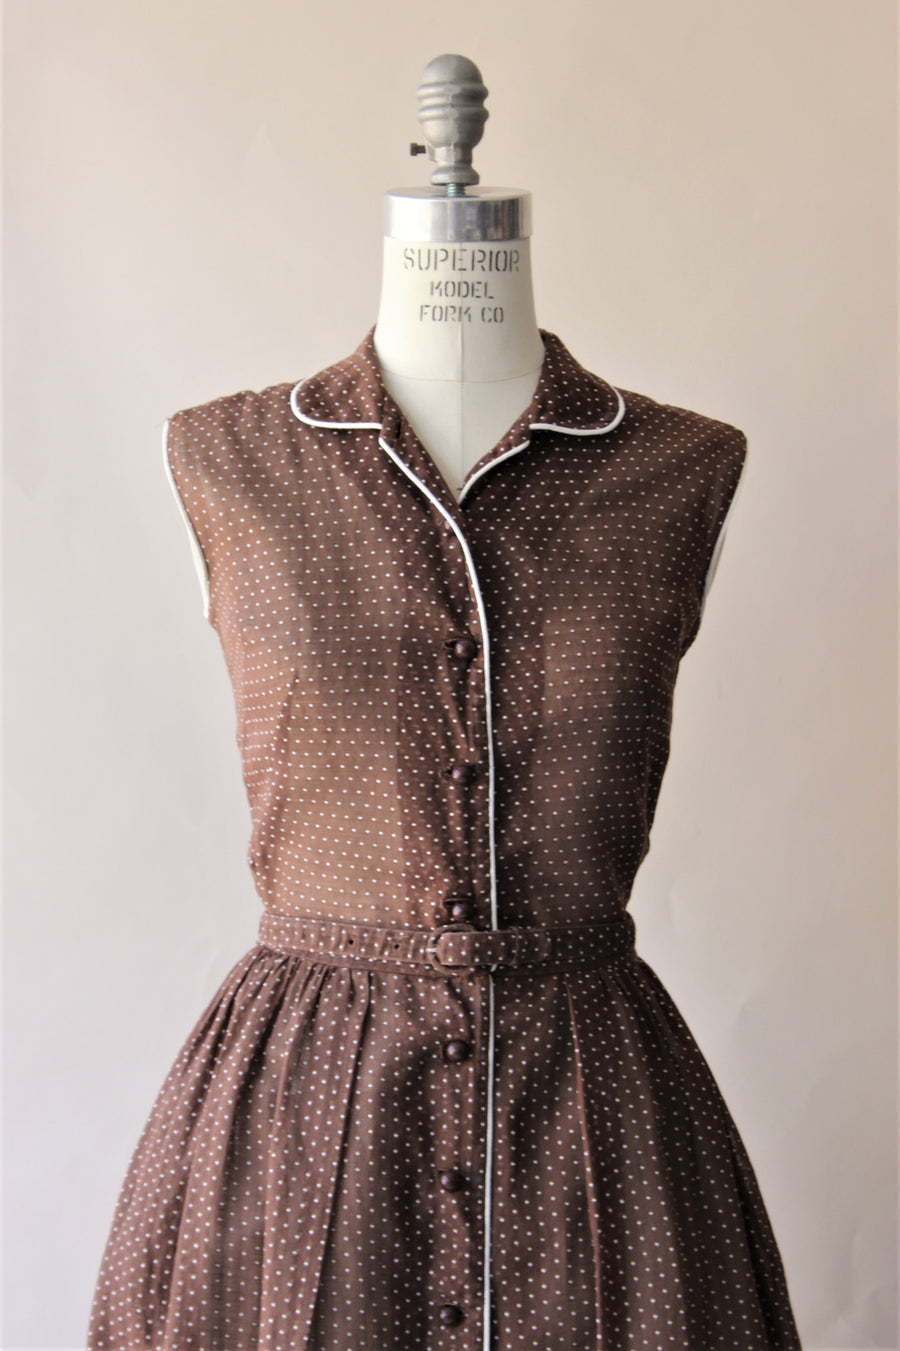 Vintage 1950s Brown Polkadot Dress